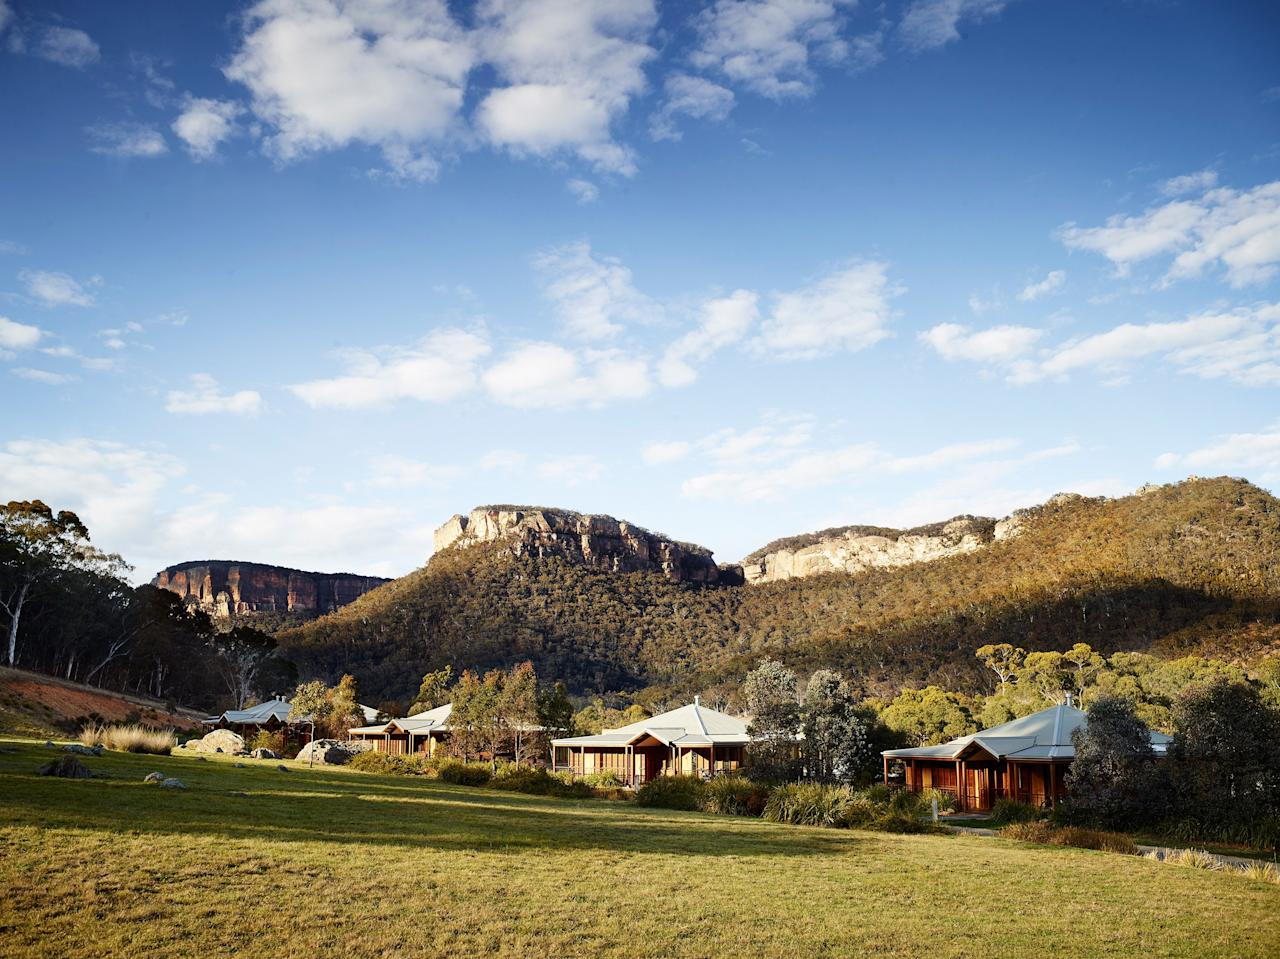 """<p><strong>How did it strike you on arrival?</strong><br> Epic escarpments and dramatic valleys make this luxe wilderness retreat in the <a href=""""https://www.cntraveler.com/activities/sydney/blue-mountains-national-park?mbid=synd_yahoo_rss"""">Greater Blue Mountains</a> feel like you've stepped onto the set of <em>Jurassic Park.</em> A three hours' drive west of Sydney, the hotel is part of a 7,000-acre private conservation reserve—so the only other guests you'll find yourself sharing views with are the wandering kangaroos, wallabies, and wombats who call the place home.</p> <p><strong>Nice. What's the crowd like?</strong><br> This just-remote-enough wildlife escape lures a smart crowd of international guests and well-groomed locals (all of whom are togged up in R.M. Williams and Driza-Bone) who are keen to experience an unforgettable Australian safari.</p> <p><strong>The good stuff: Tell us about your room.</strong><br> Each of the 40 freestanding stone-and-wood villas frames jaw-dropping views of the surrounding landscape. Single-bed Heritage Villas with double-sided fireplaces, private heated lap pool, and verandas tend to appeal most to couples, while two-bedroom Wollemi Villas work best if you've brought the whole family.</p> <p><strong>How about the little things, like mini bar, or shower goodies. Any of that find its way into your suitcase?</strong><br> With plump beds, double vanities, spacious bathrooms and sky-lit showers, rooms have the key stuff more than covered—but the small details are thoughtful, too, from carved wooden wombat ornaments, to binoculars for birdspotting and books devoted to naturalist Charles Darwin's 19th-century visits to Wolgan Valley. Villa rentals also include complementary mountain bikes, so you can explore independently. Free WiFi makes up for the lack of mobile phone reception.</p> <p><strong>Room service: Worth it?</strong><br> You definitely won't go hungry—this all-inclusive resort puts up three gourmet meals daily, with non-al"""